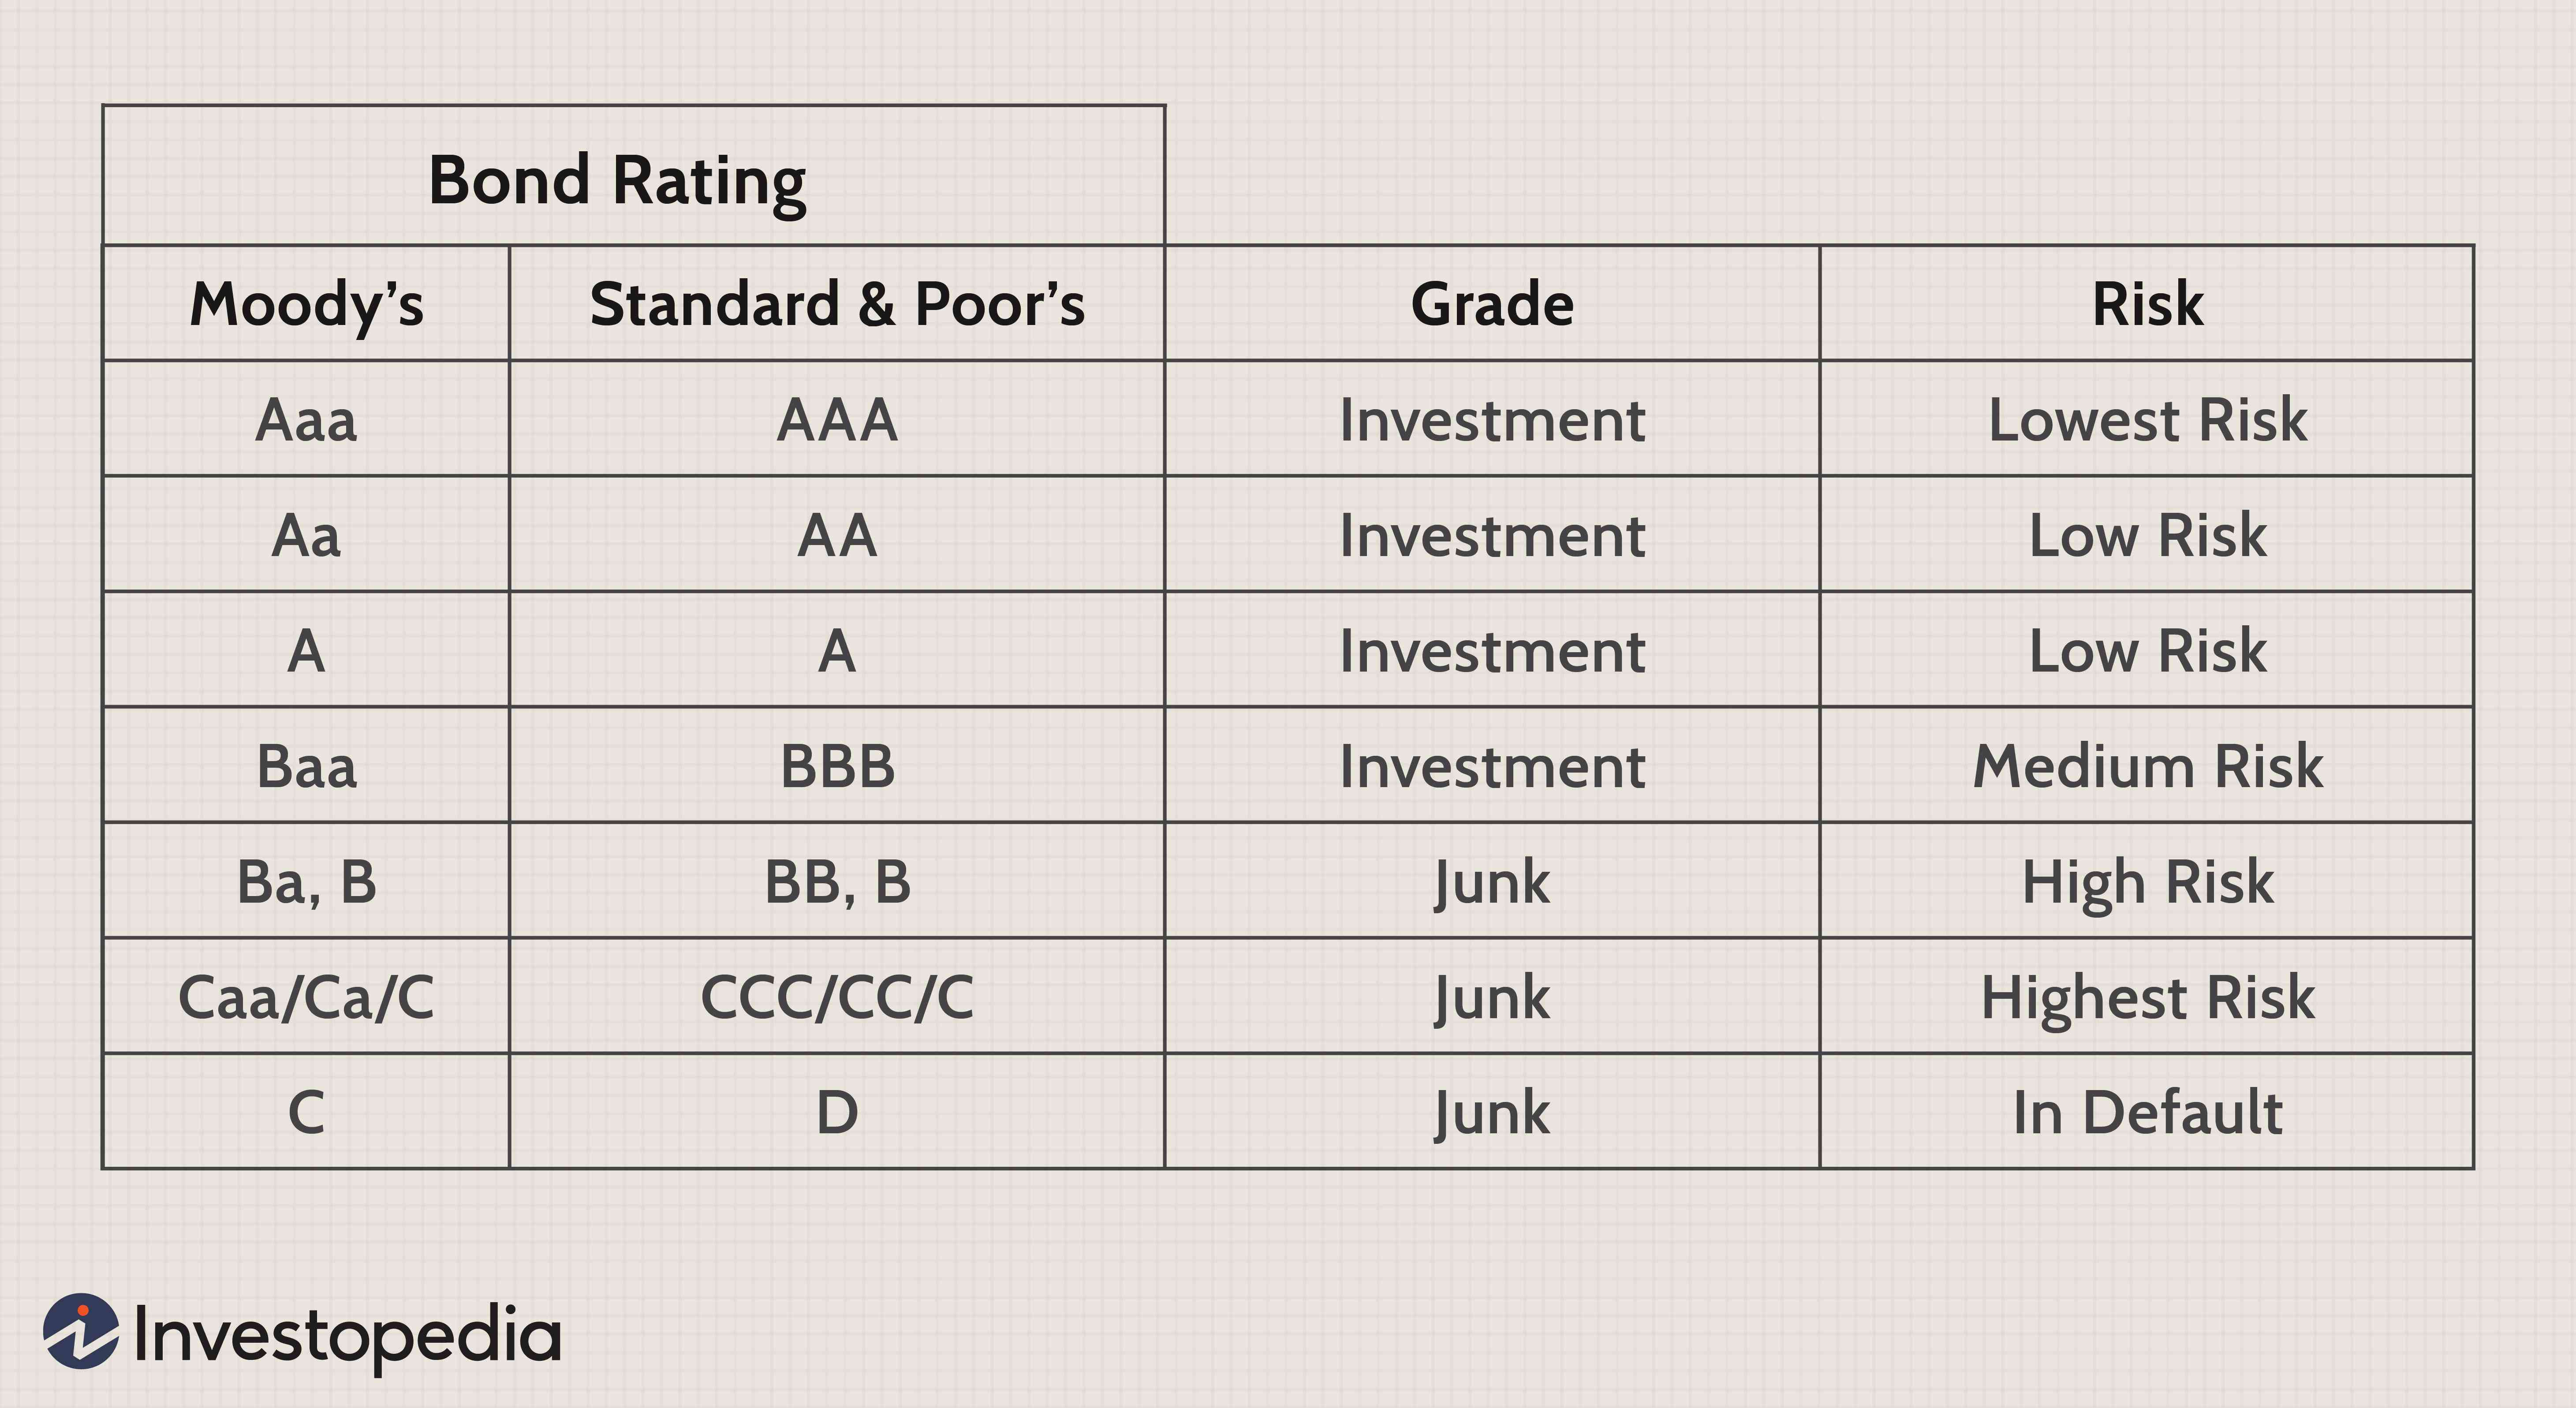 Investment grade refers to the power investment poperty matters